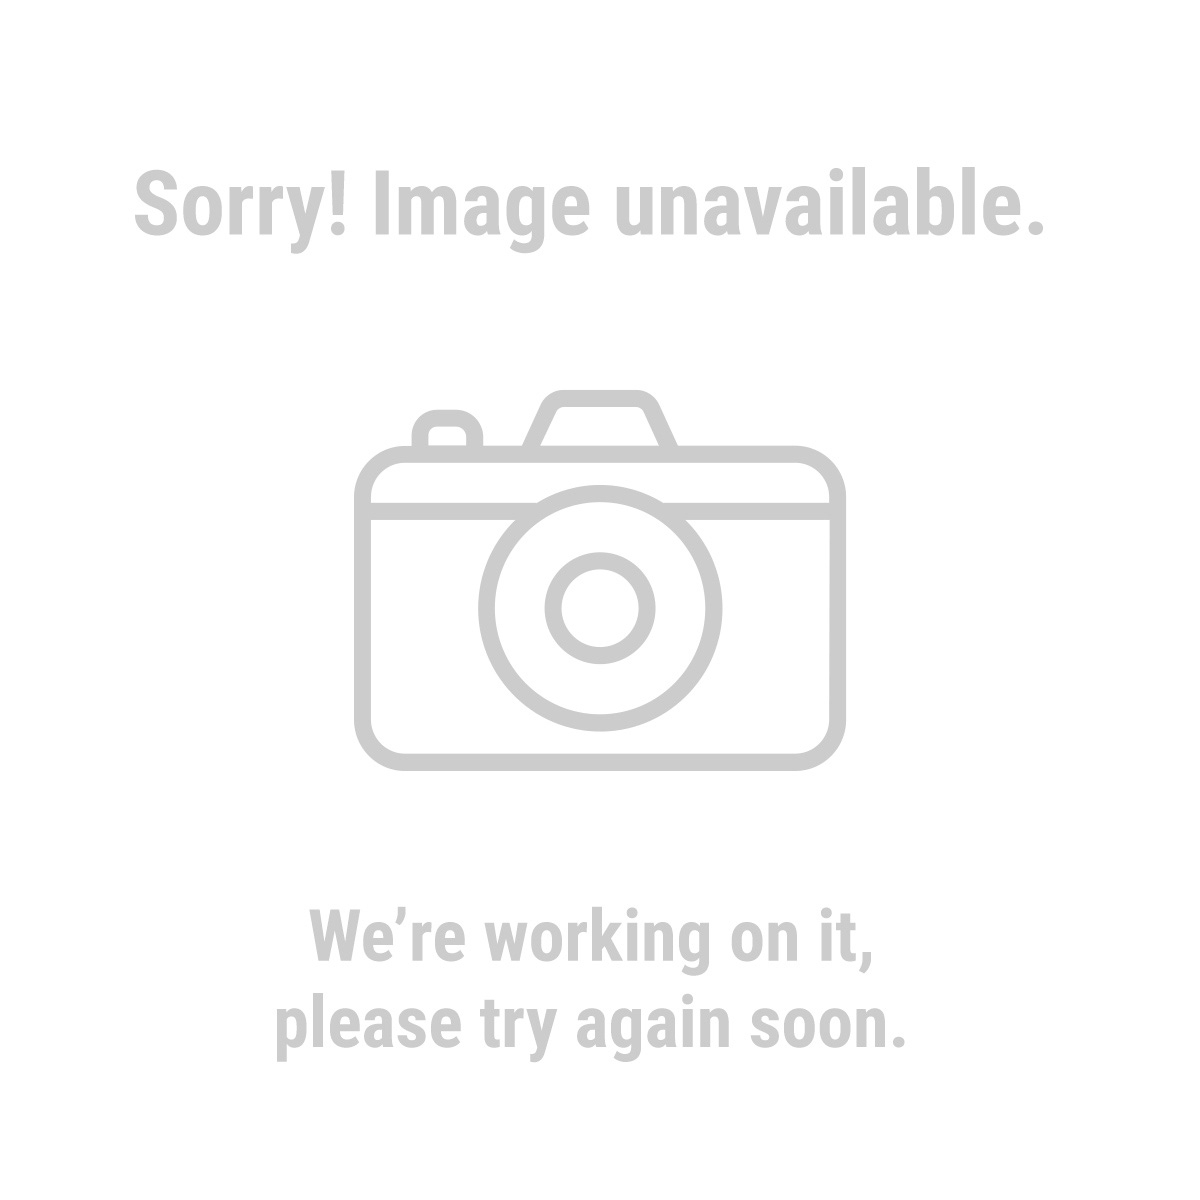 Cen-Tech 95701 1000 Ft. Measuring Wheel